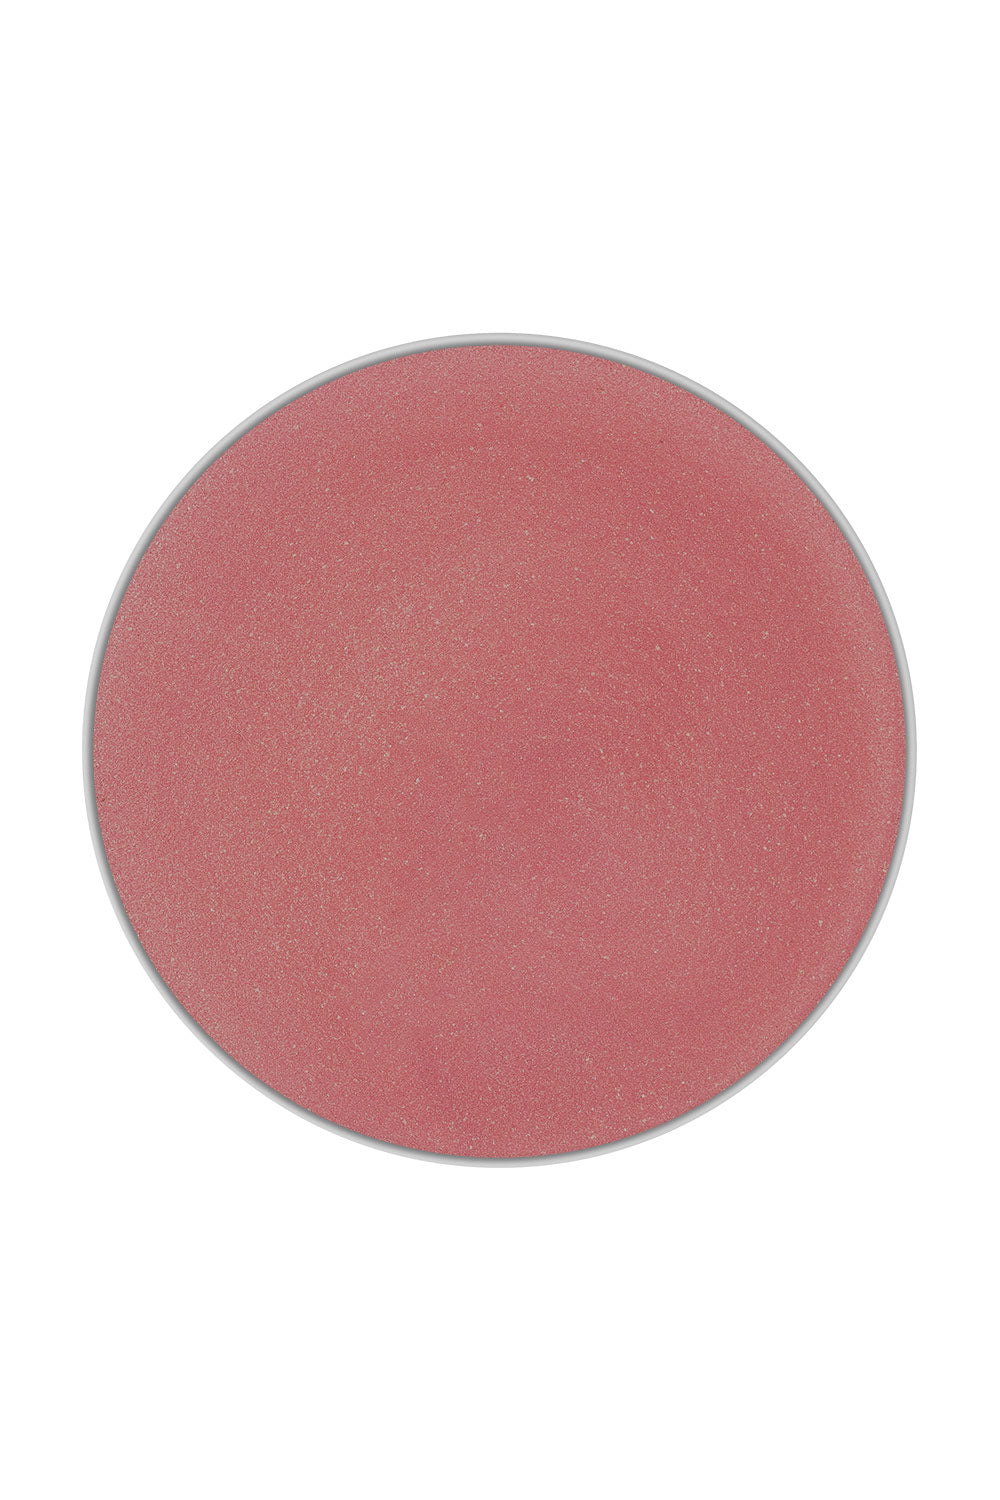 Type 2 CremeWear Blush Pan - Pretty Pink